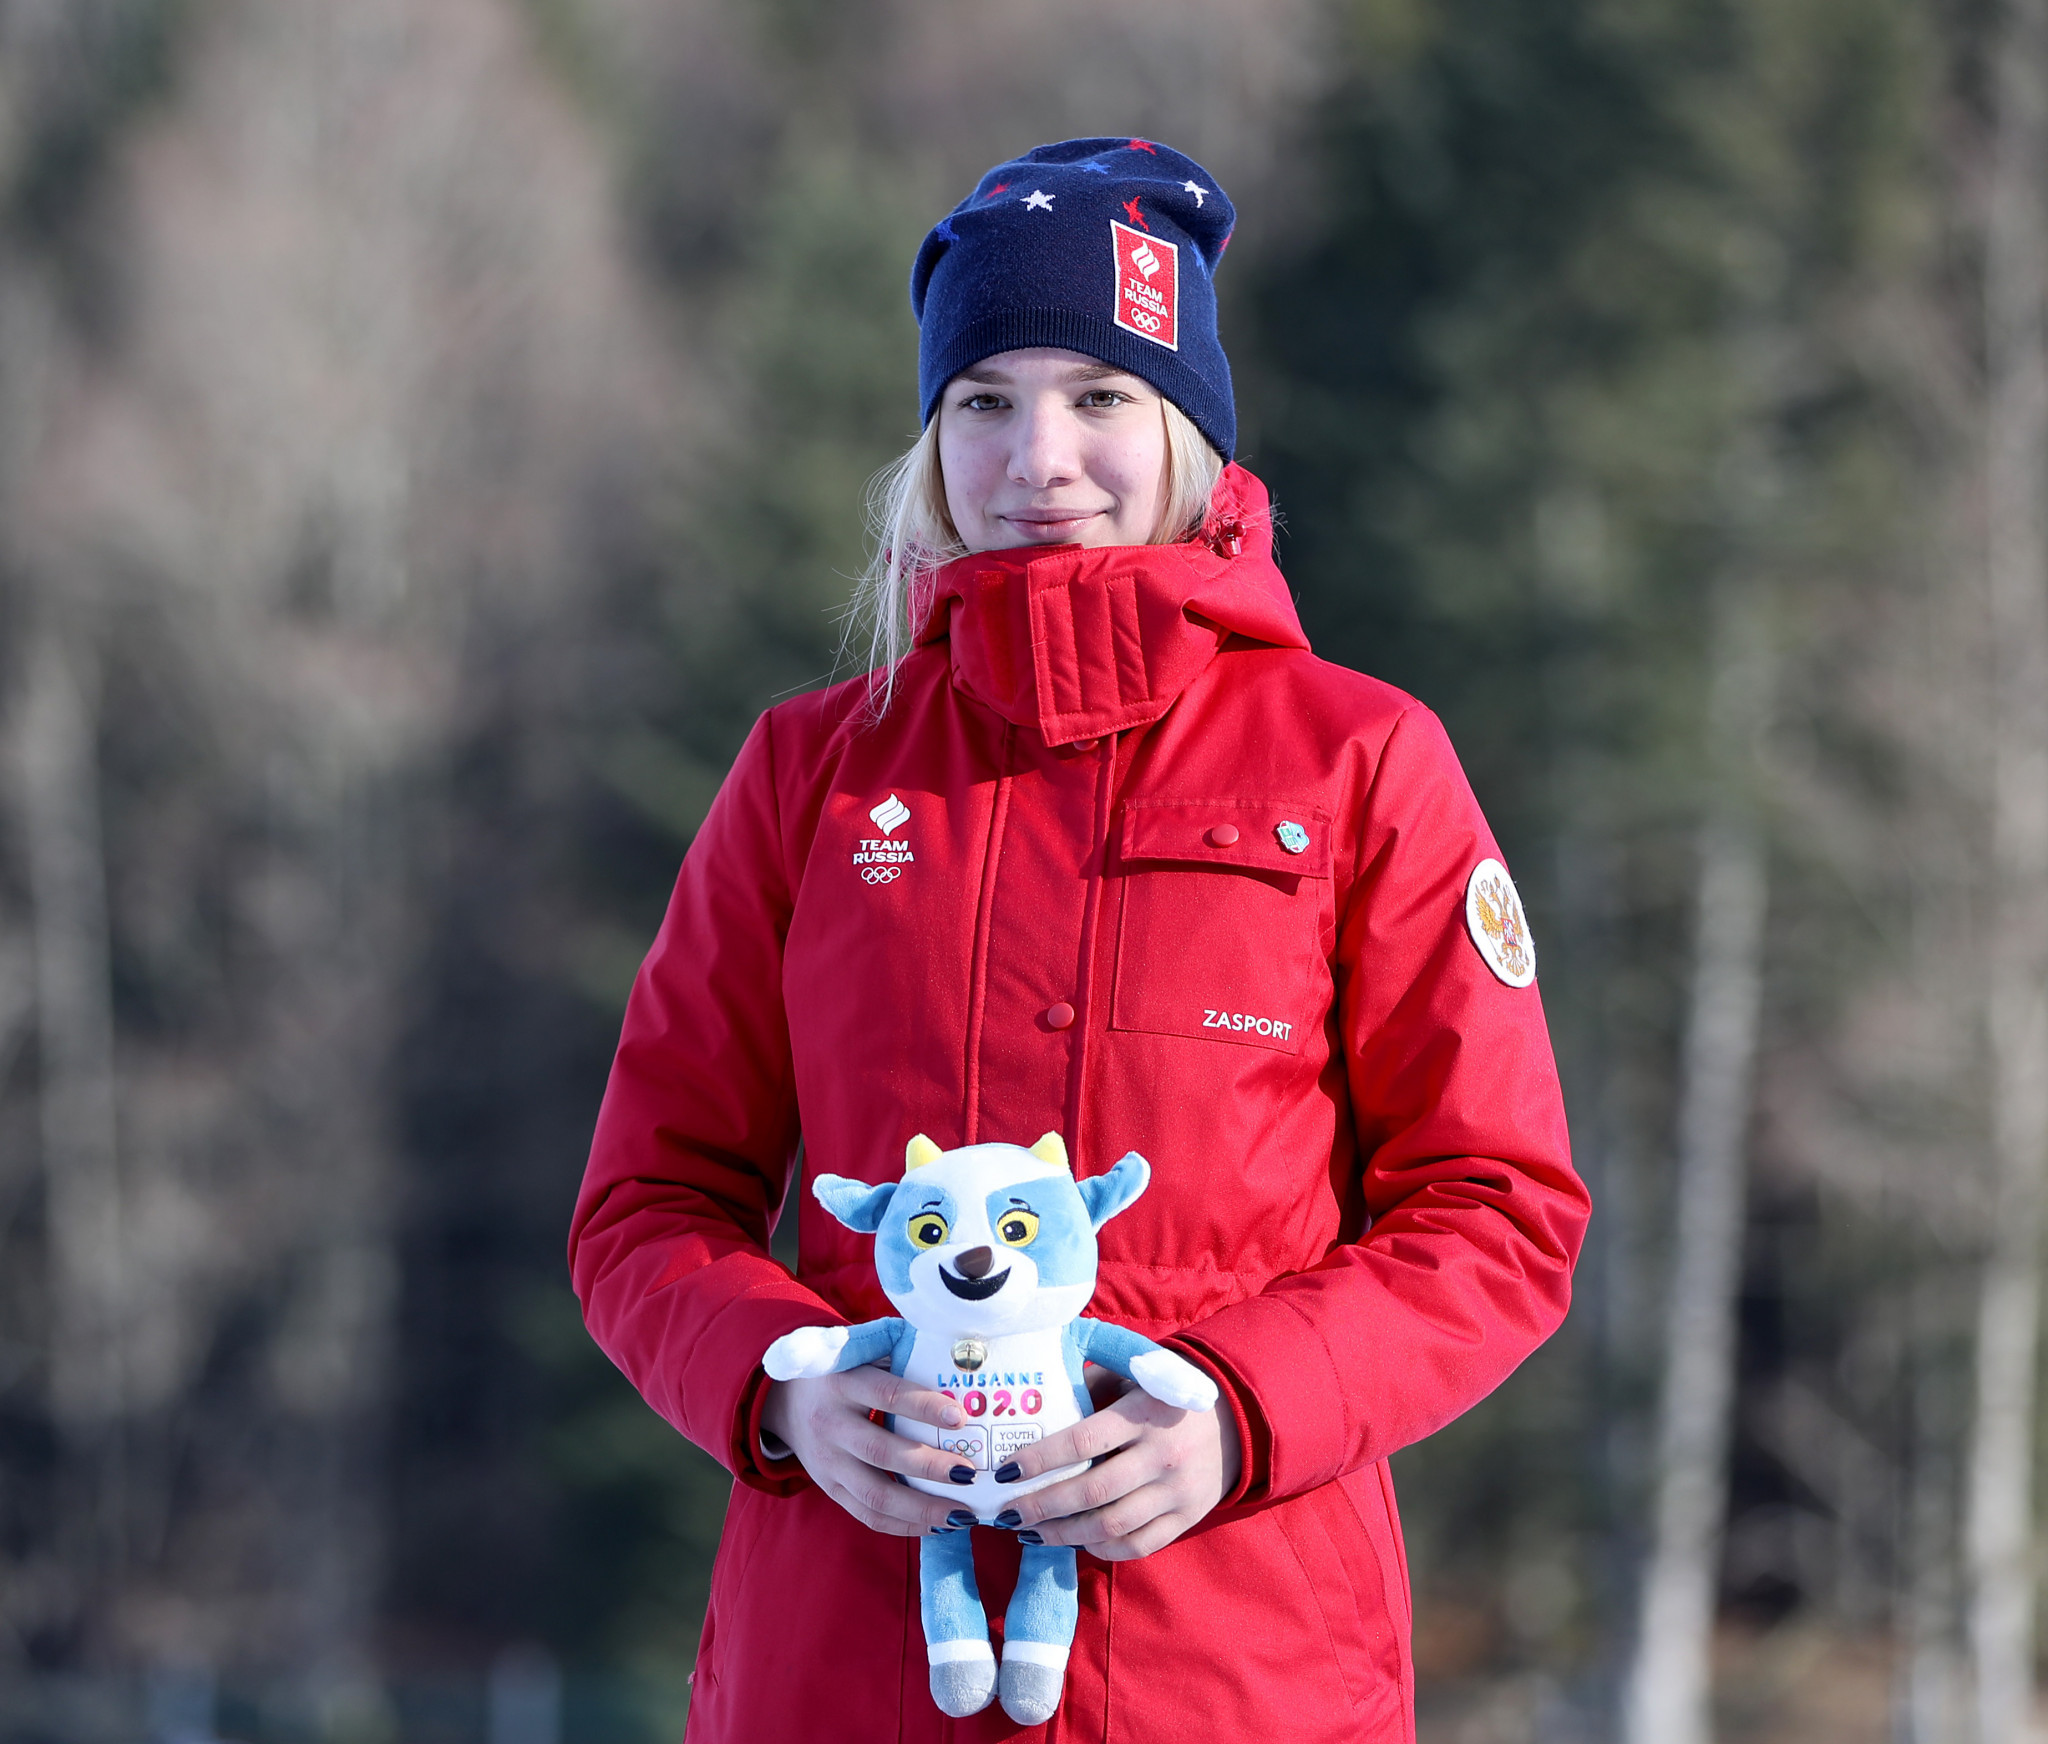 Russia at the double in biathlon at Lausanne 2020 Youth Olympic Games